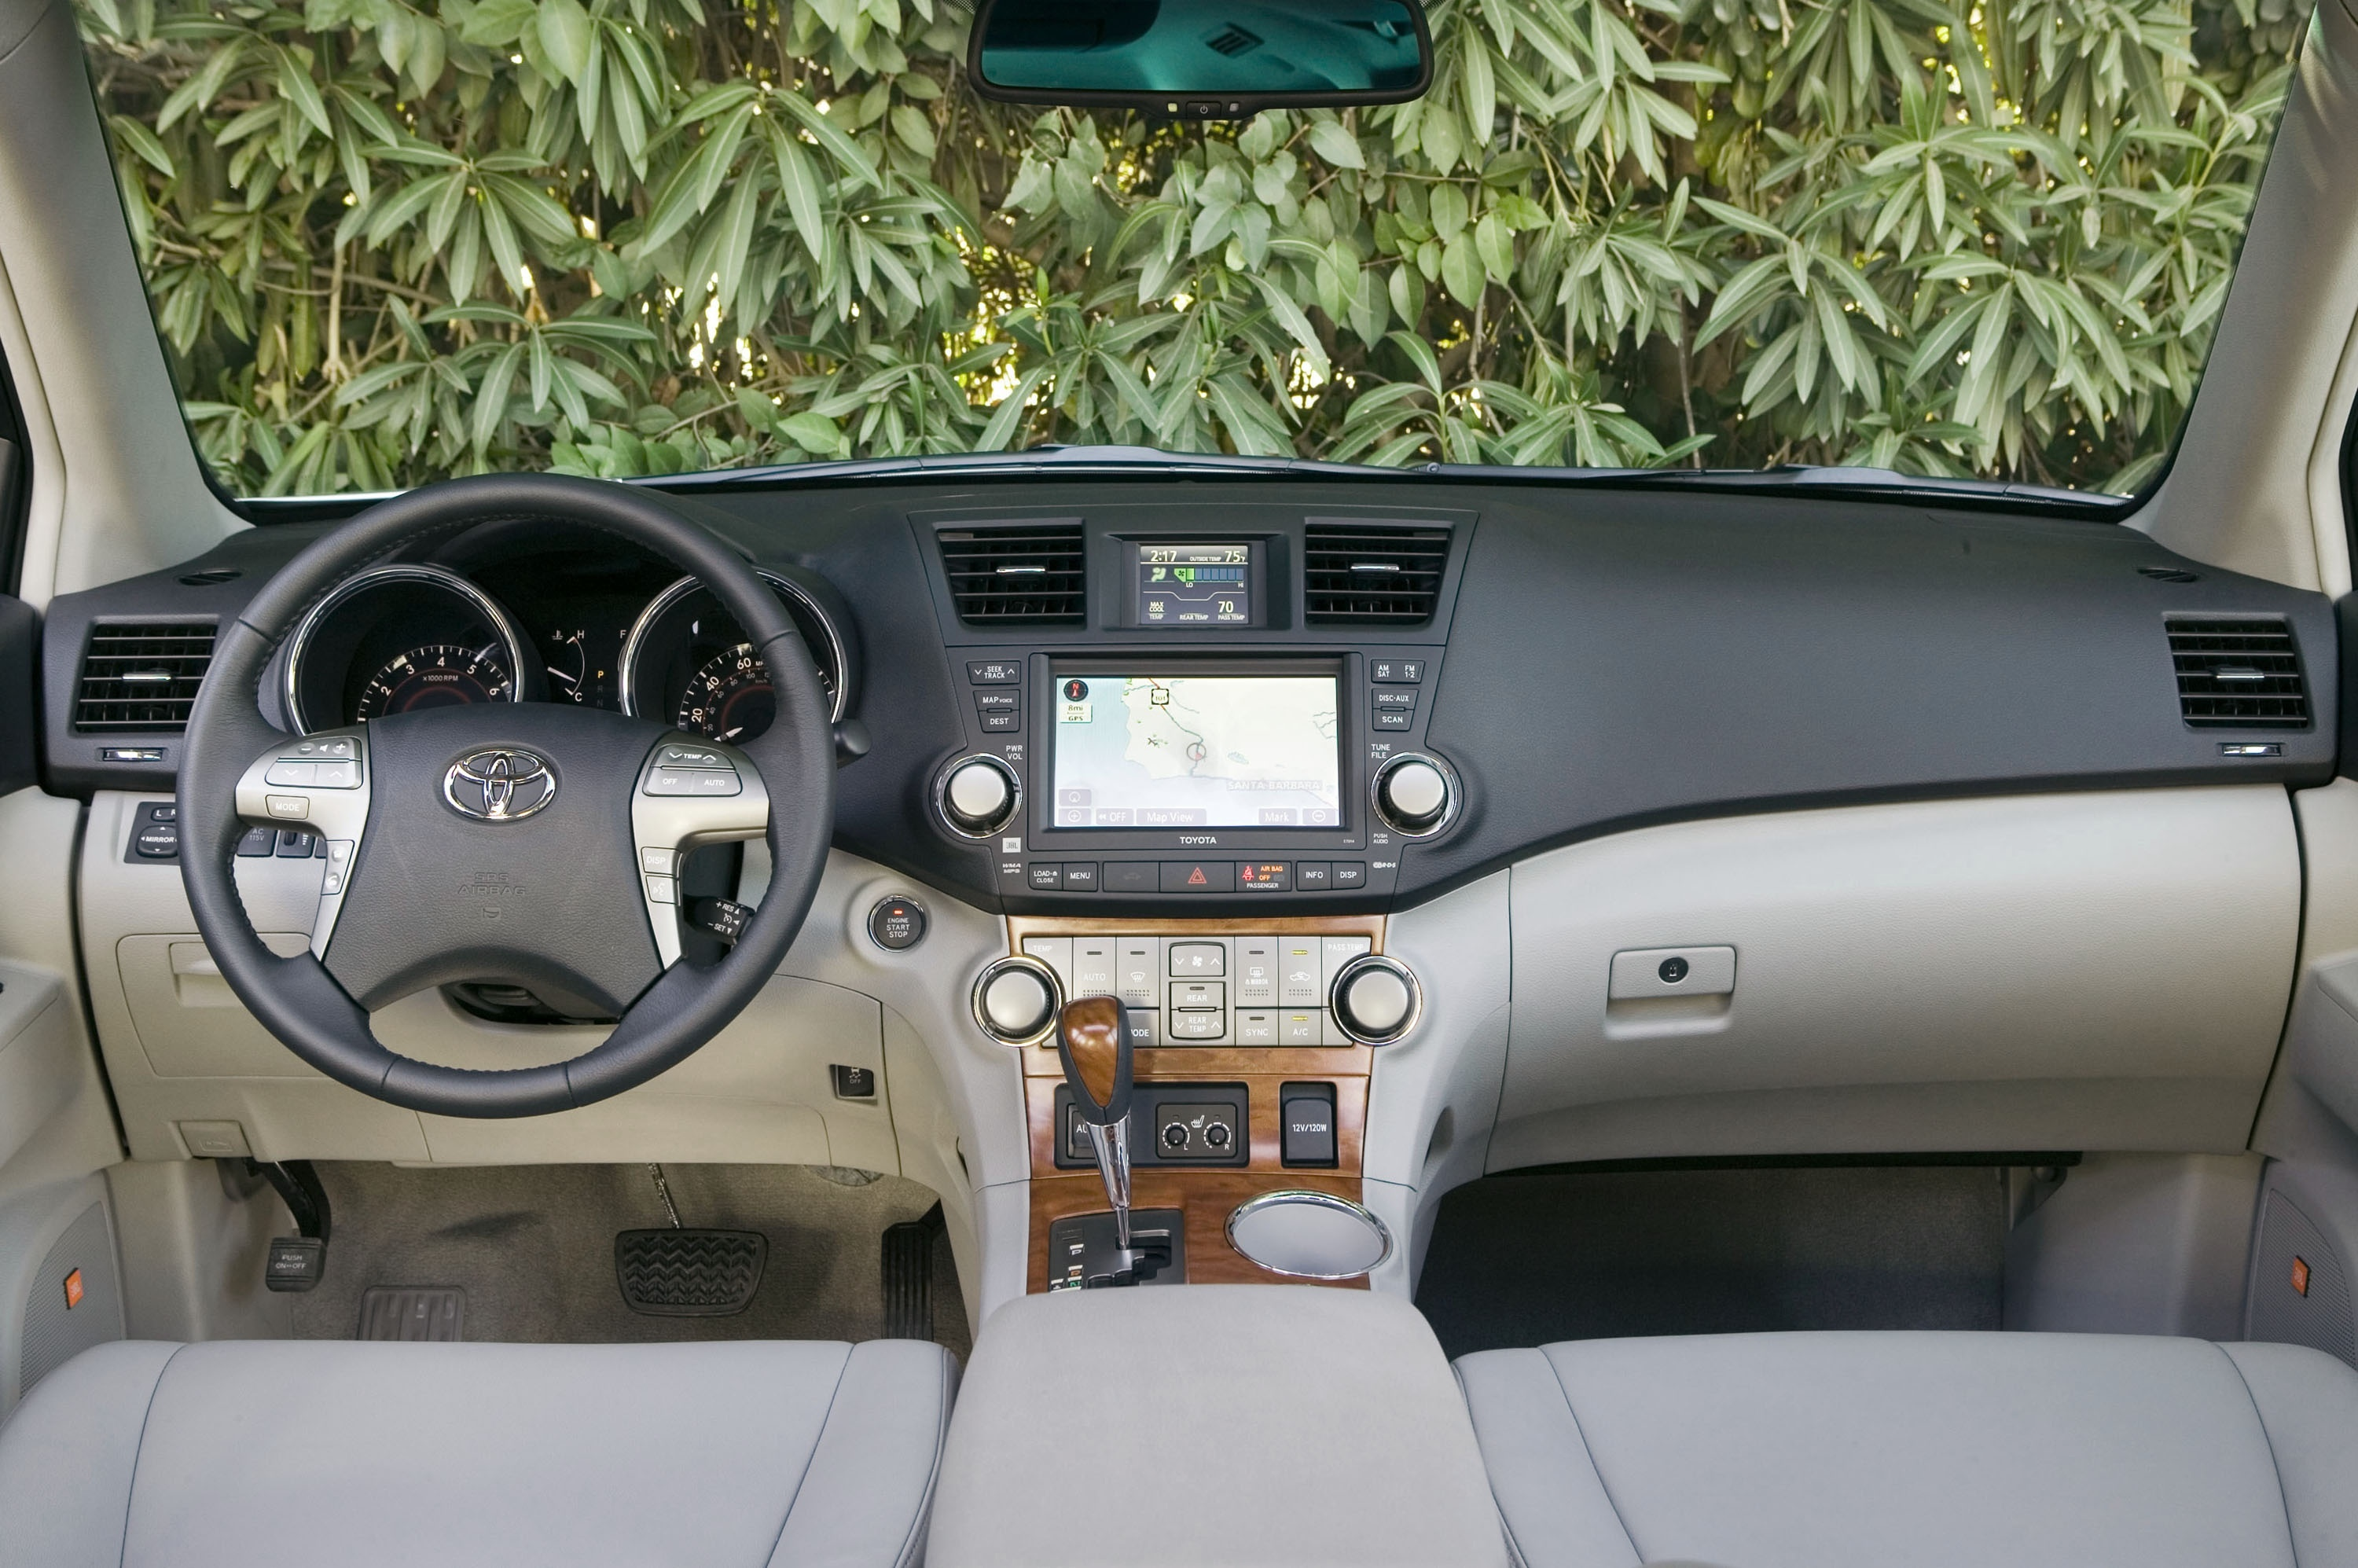 toyota your is to highlander the family and way for hybrid travel a stylish comfortable interior